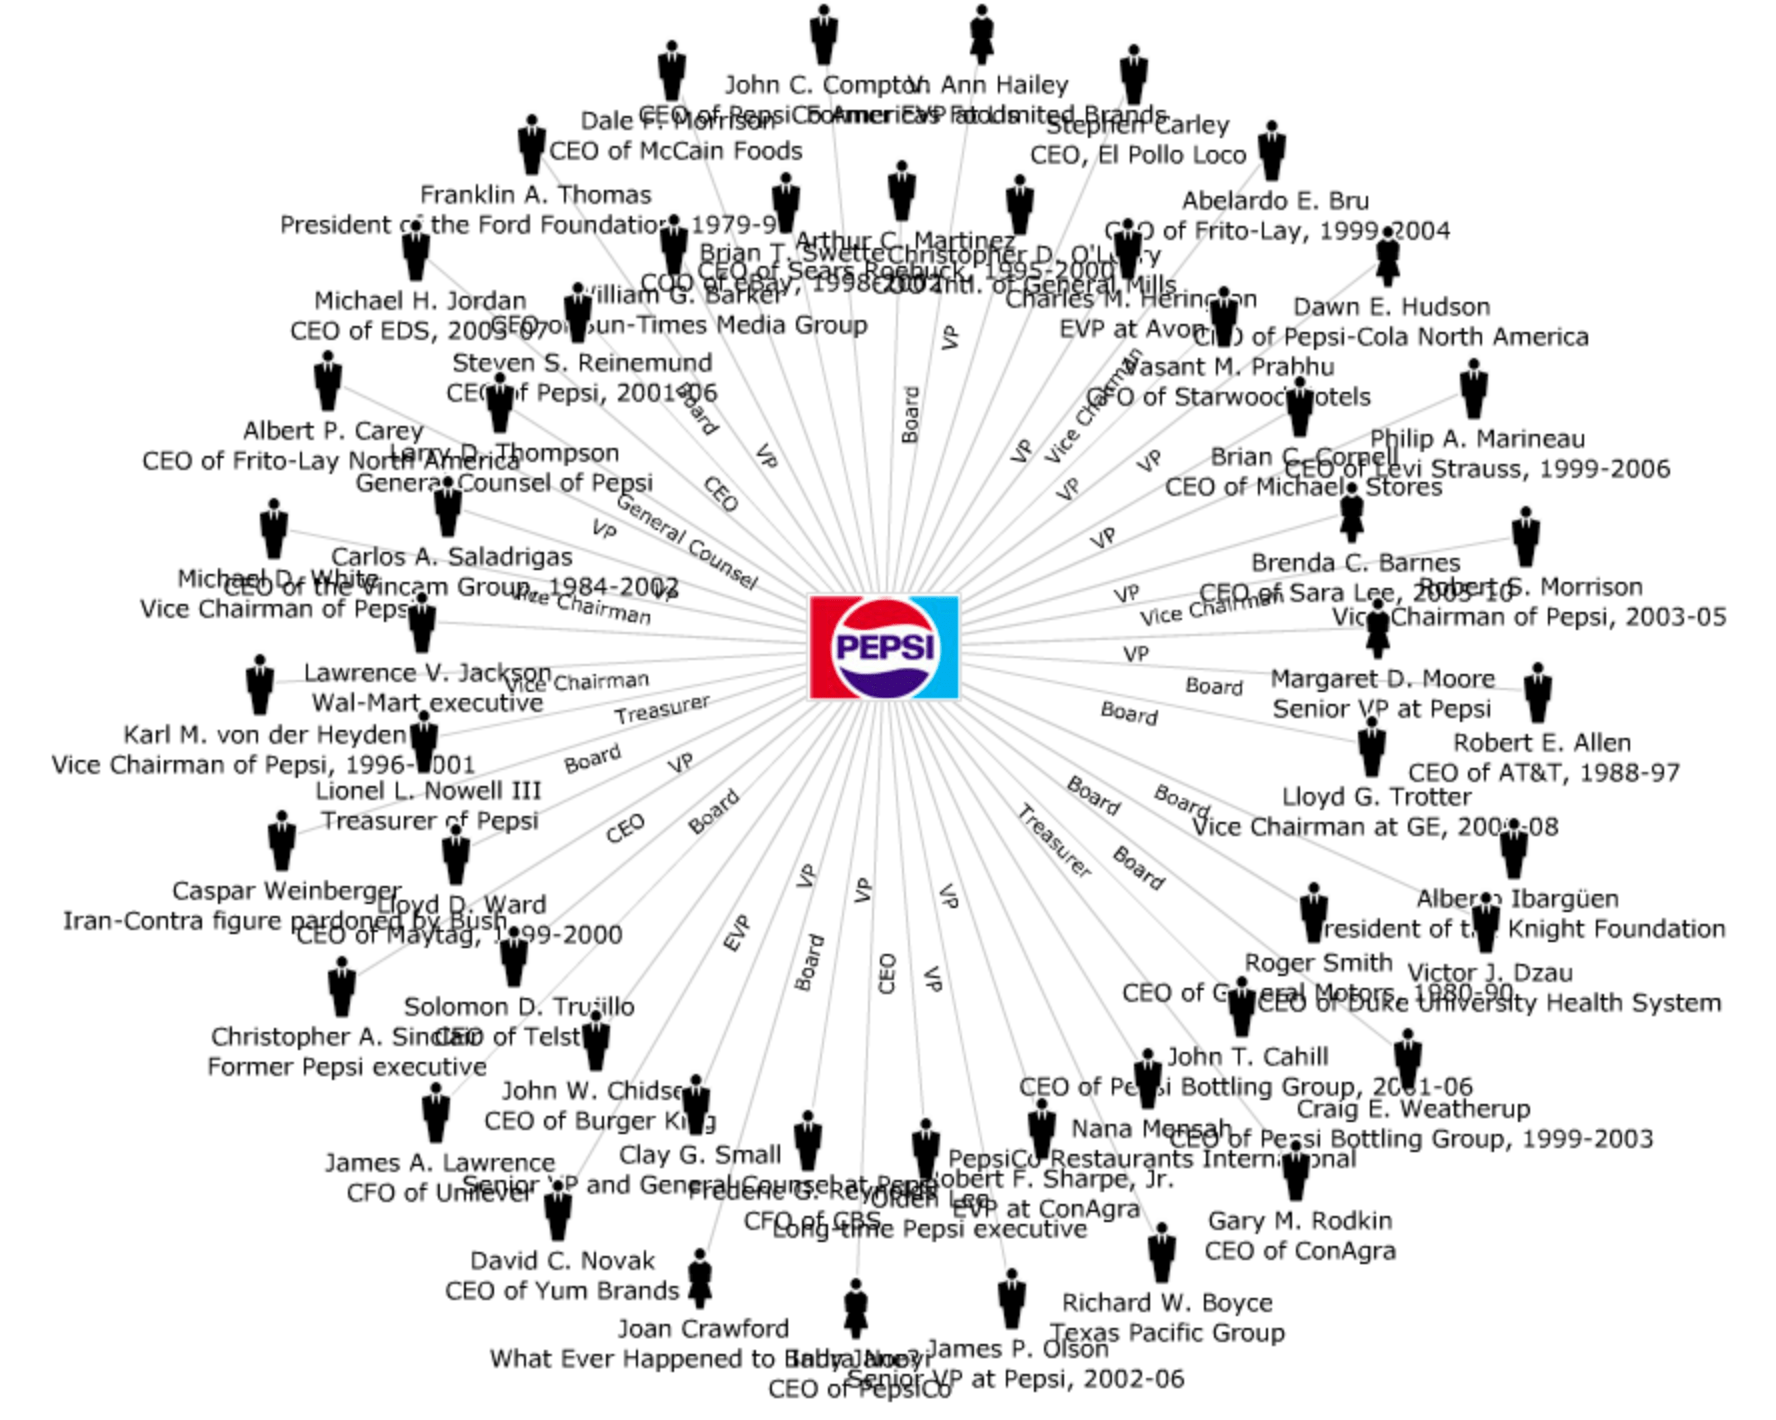 Private And Public Linkages Of Soda Companies